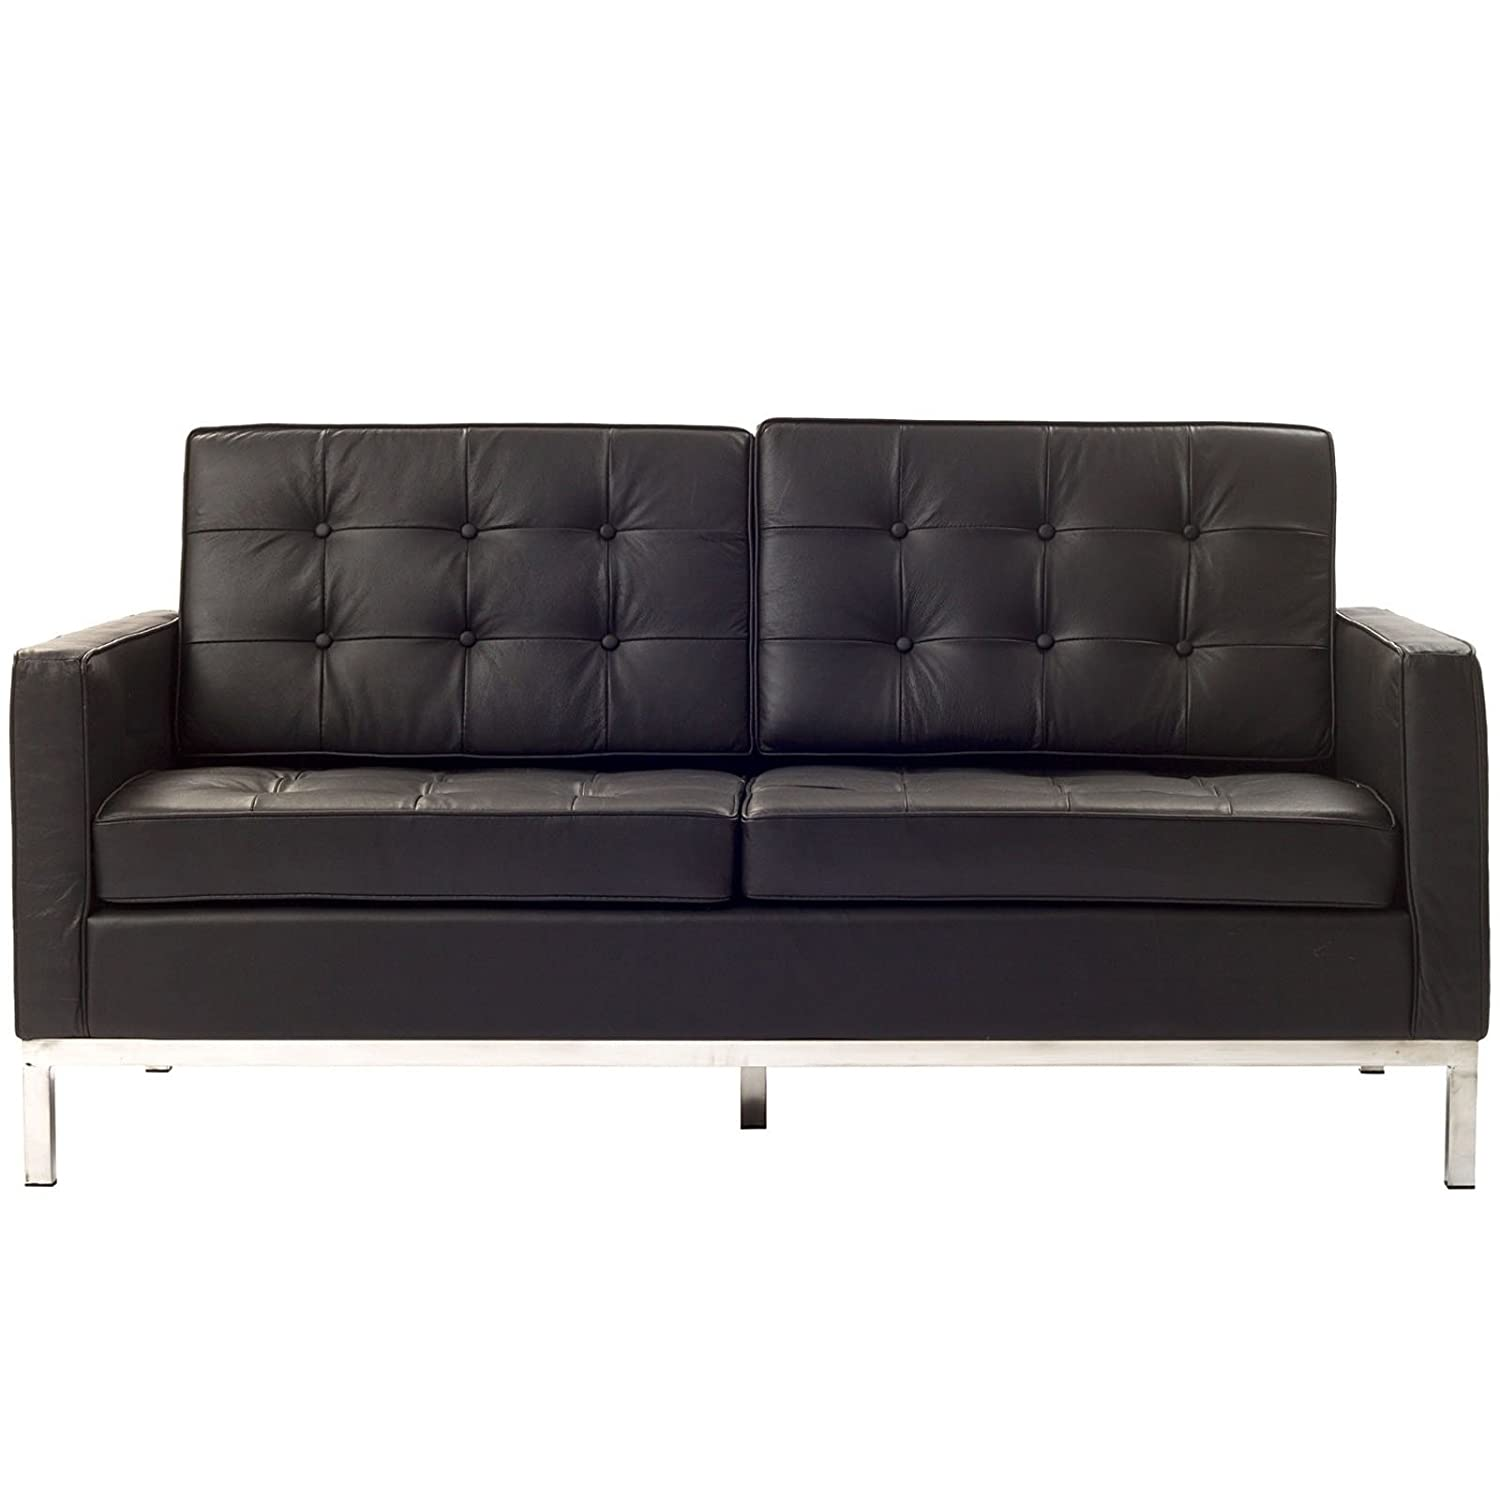 Urban Contemporary Tufted Brown Leather Loveseat